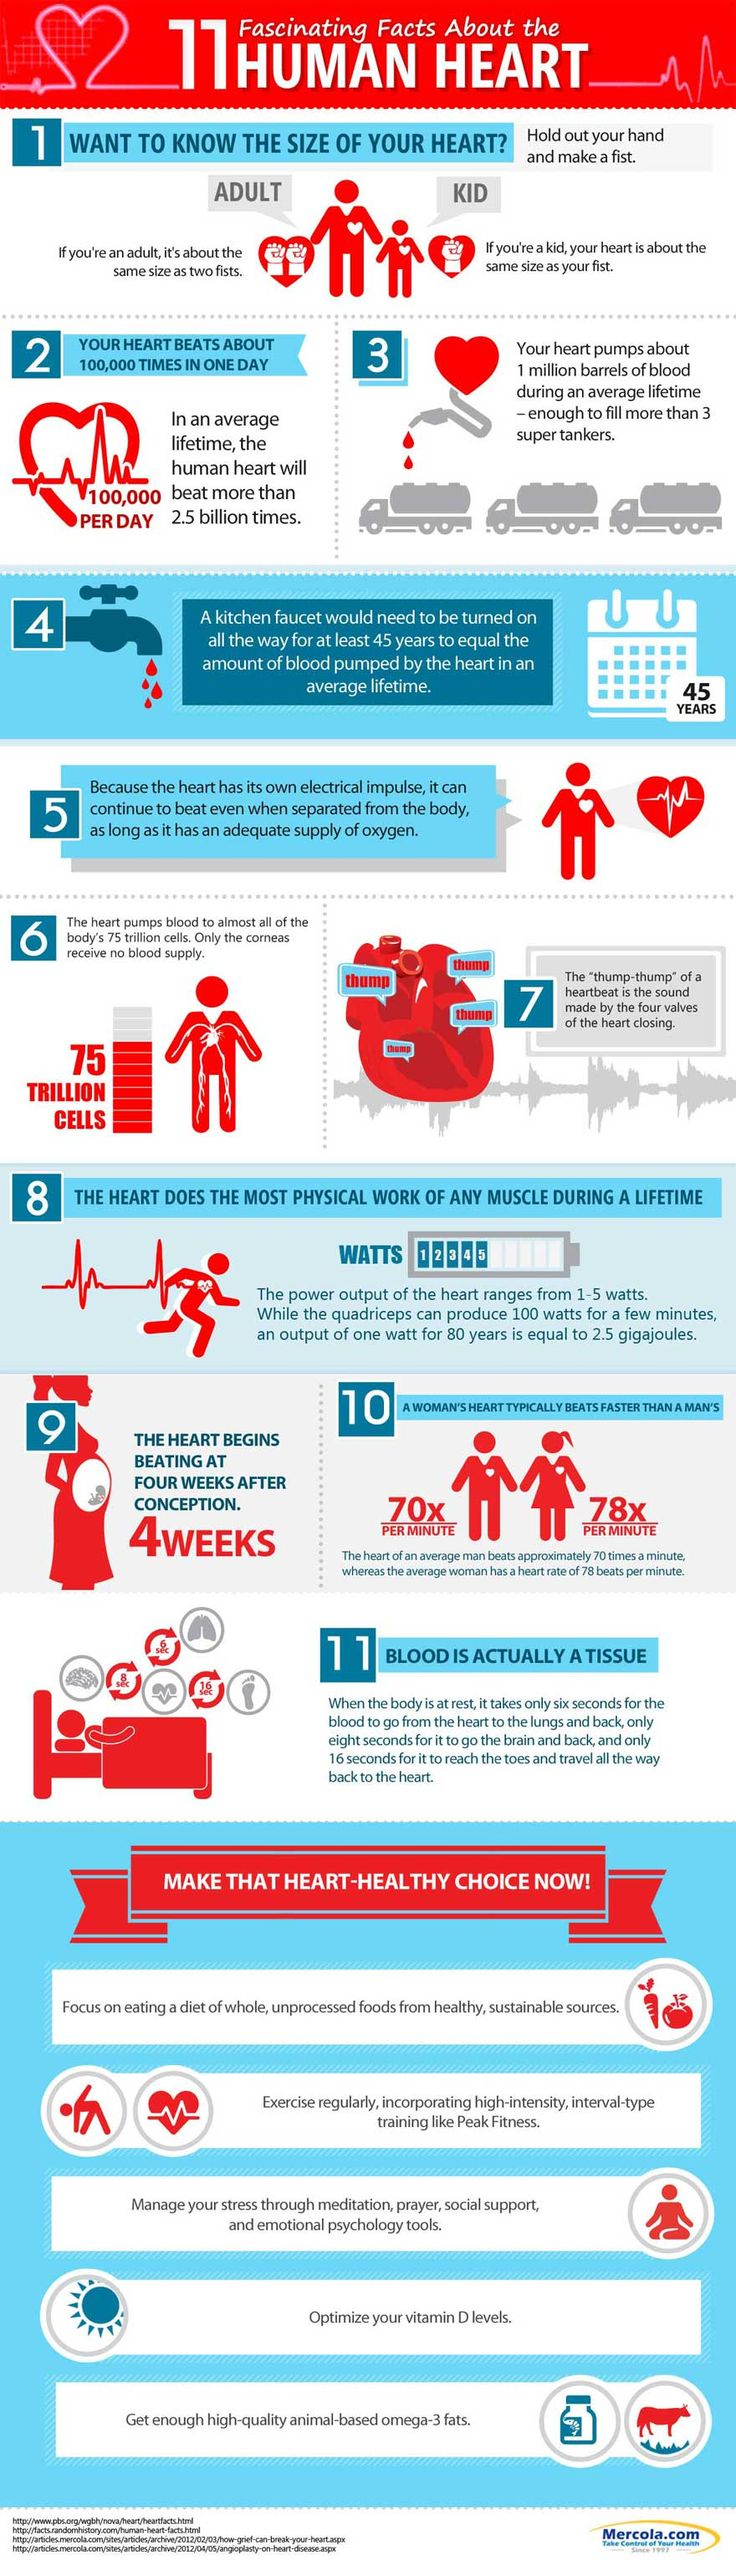 17 best images about the human heart heart disease the 11 interesting human heart facts in this infographic will help you to better appreciate this